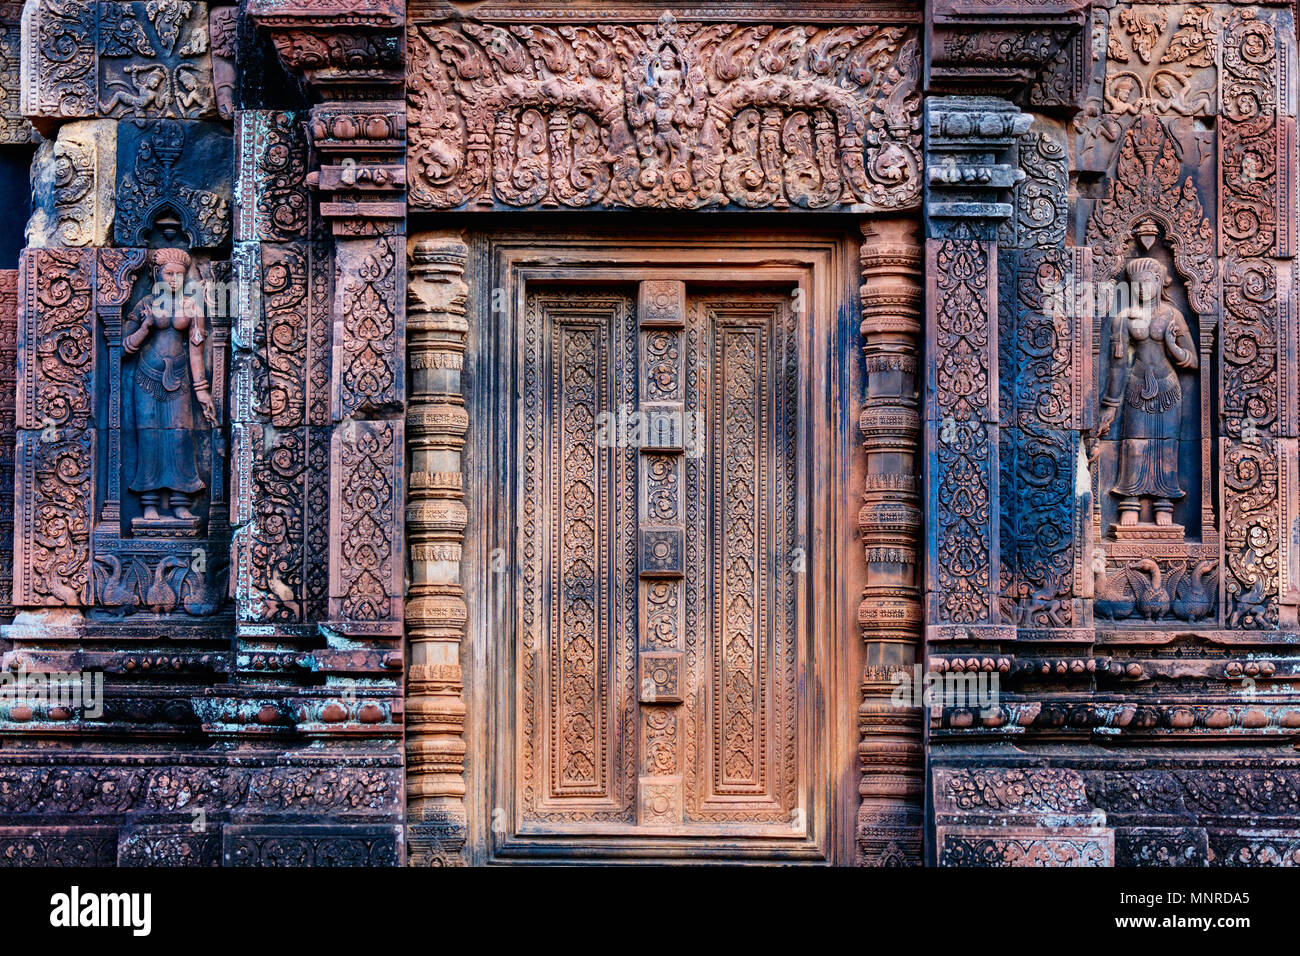 Beautiful Banteay Srei temple carvings in Angkor Archaeological area in Cambodia - Stock Image